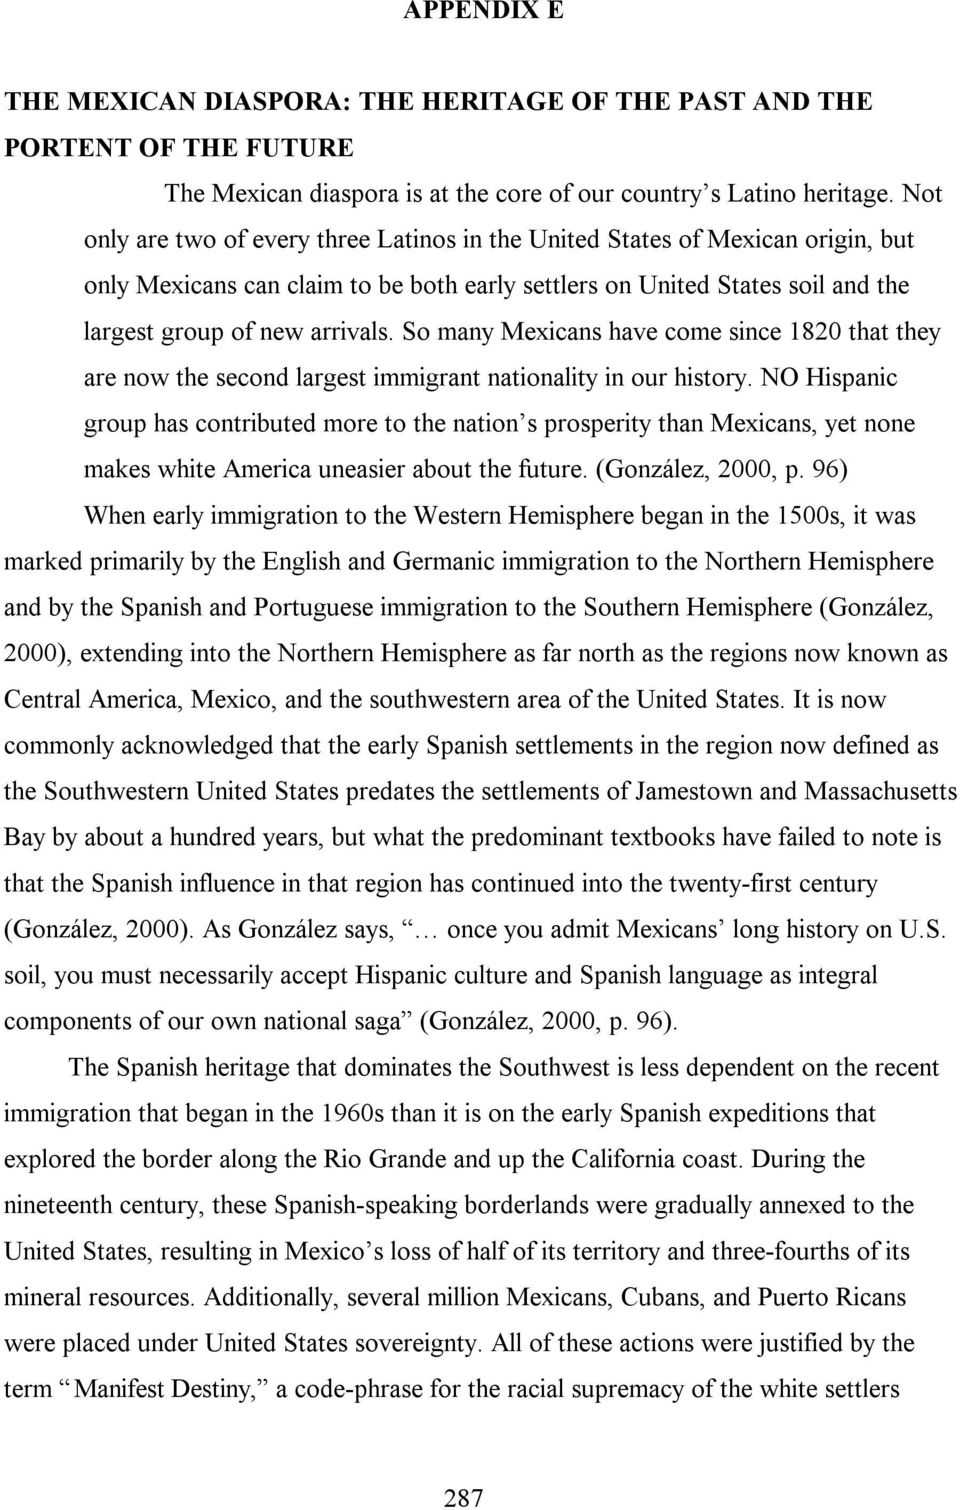 So many Mexicans have come since 1820 that they are now the second largest immigrant nationality in our history.